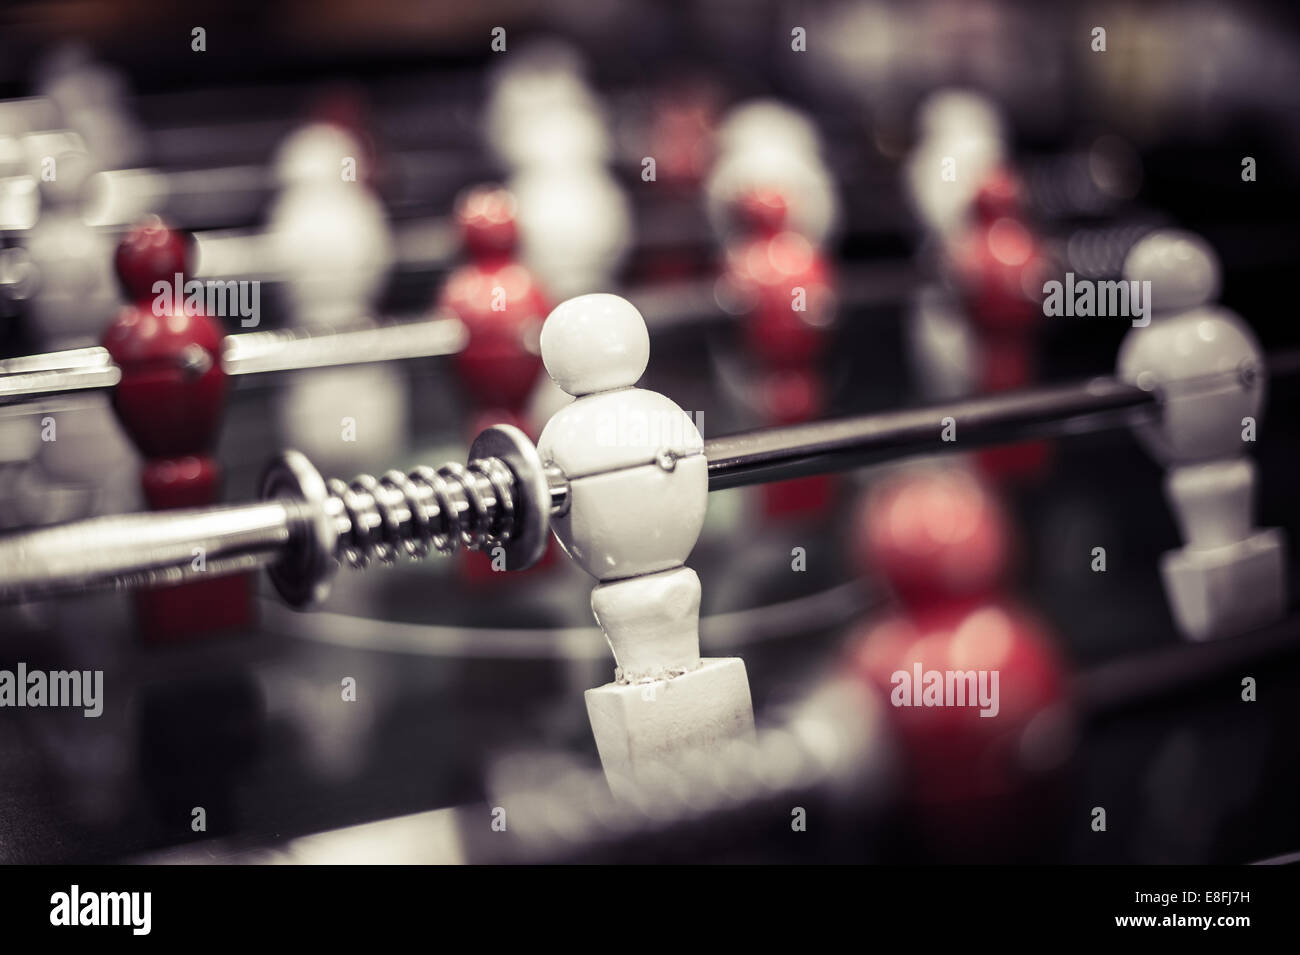 Close-up of foosball table - Stock Image